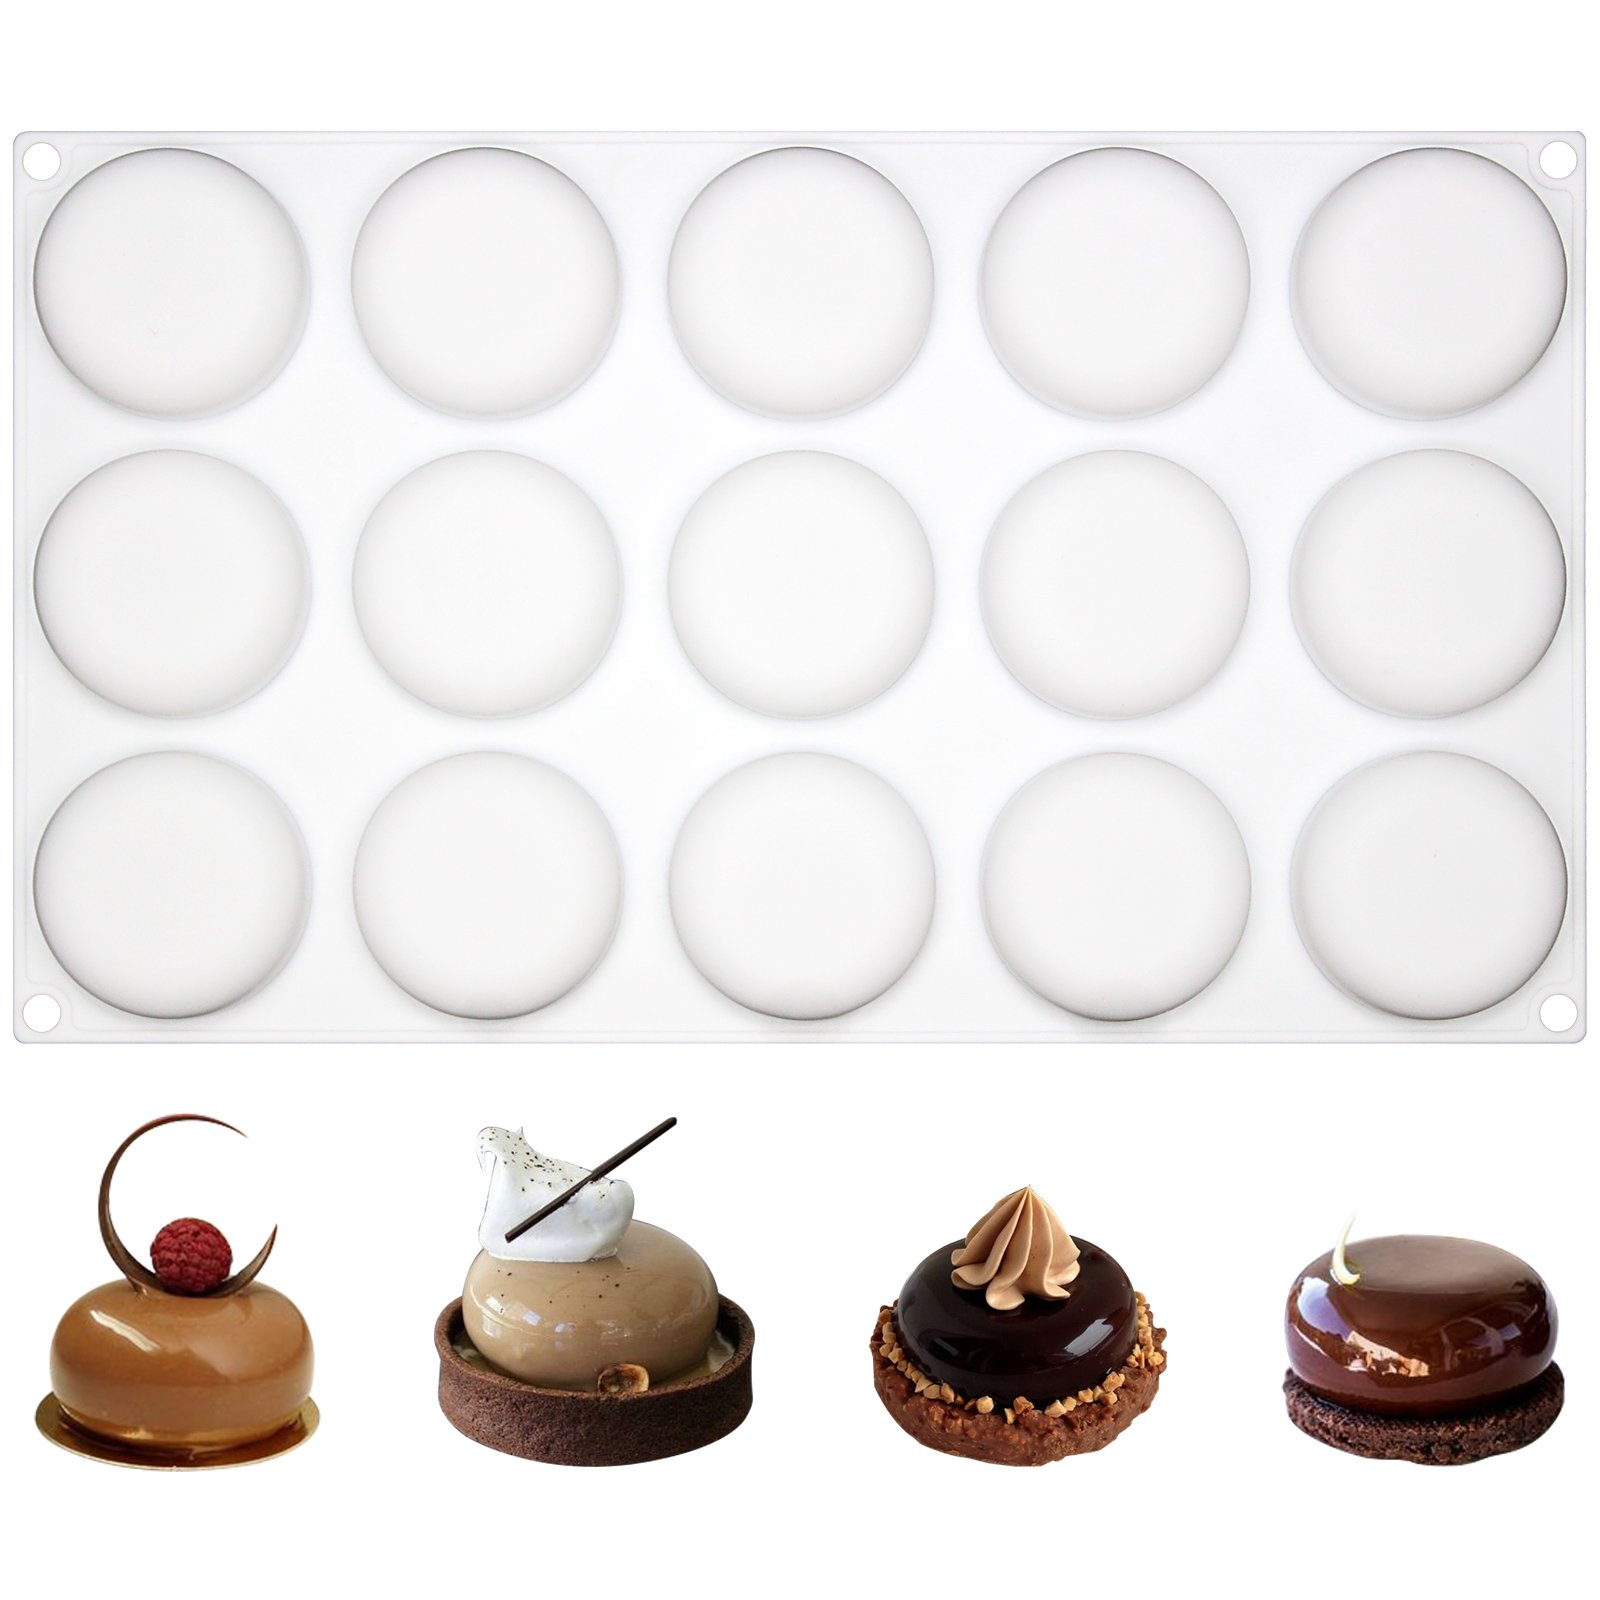 Funshowcase 15 Cavities Curved Round Stone Silicone Mold Tray per Cavity 1.8x1.8x0.7inch